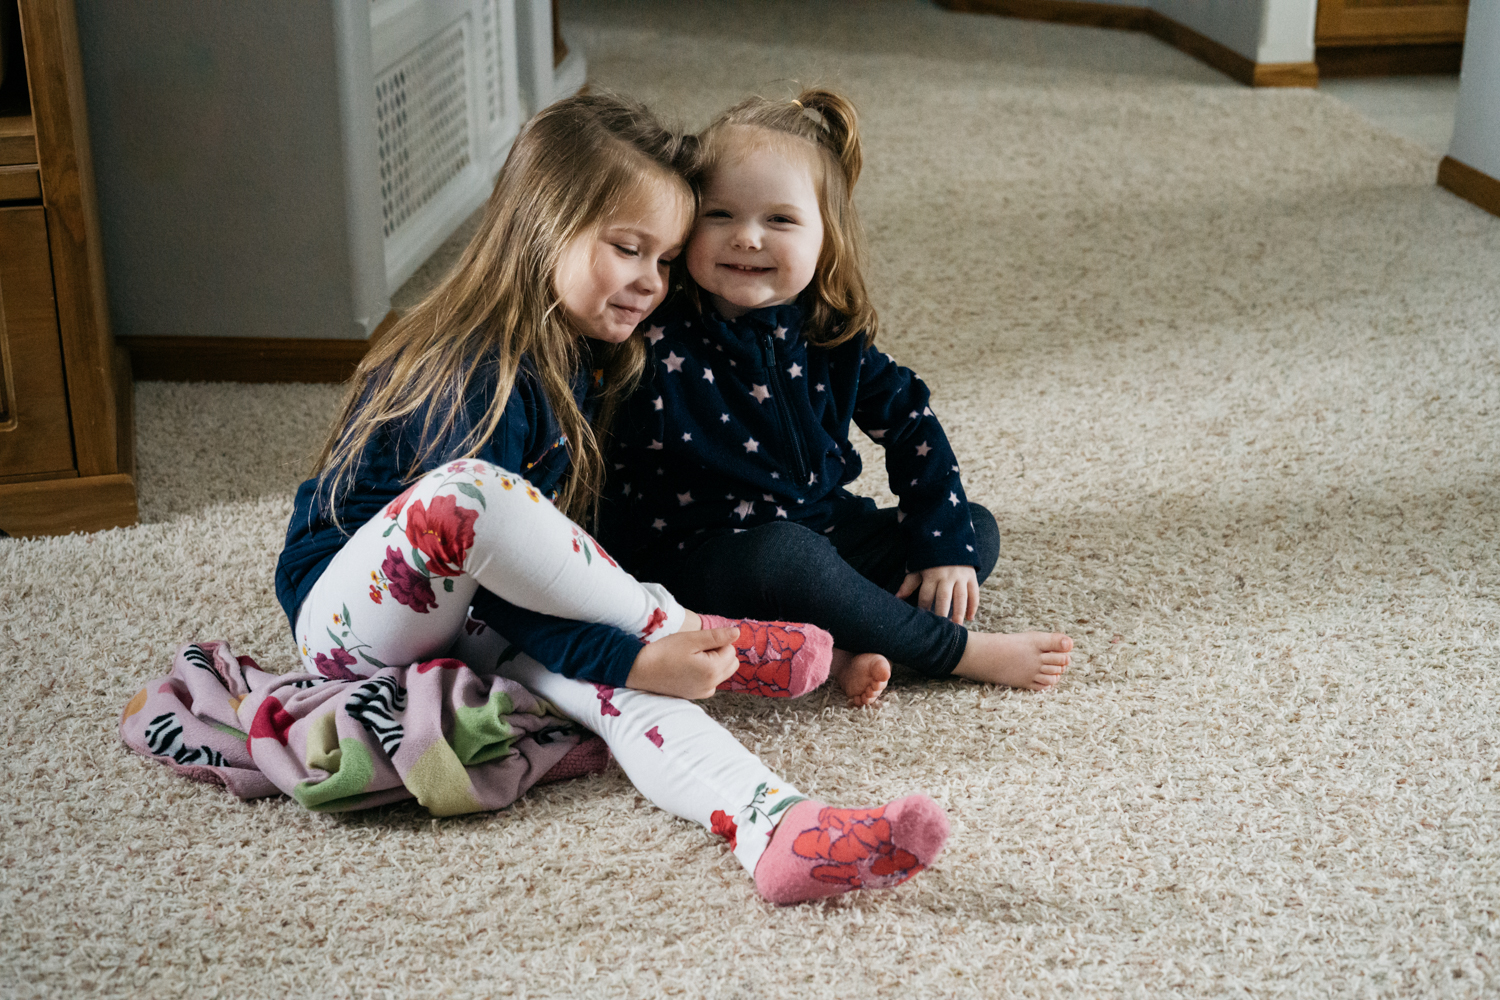 Two little girls sharing a moment of friendship at a West Fargo preschool daycare.